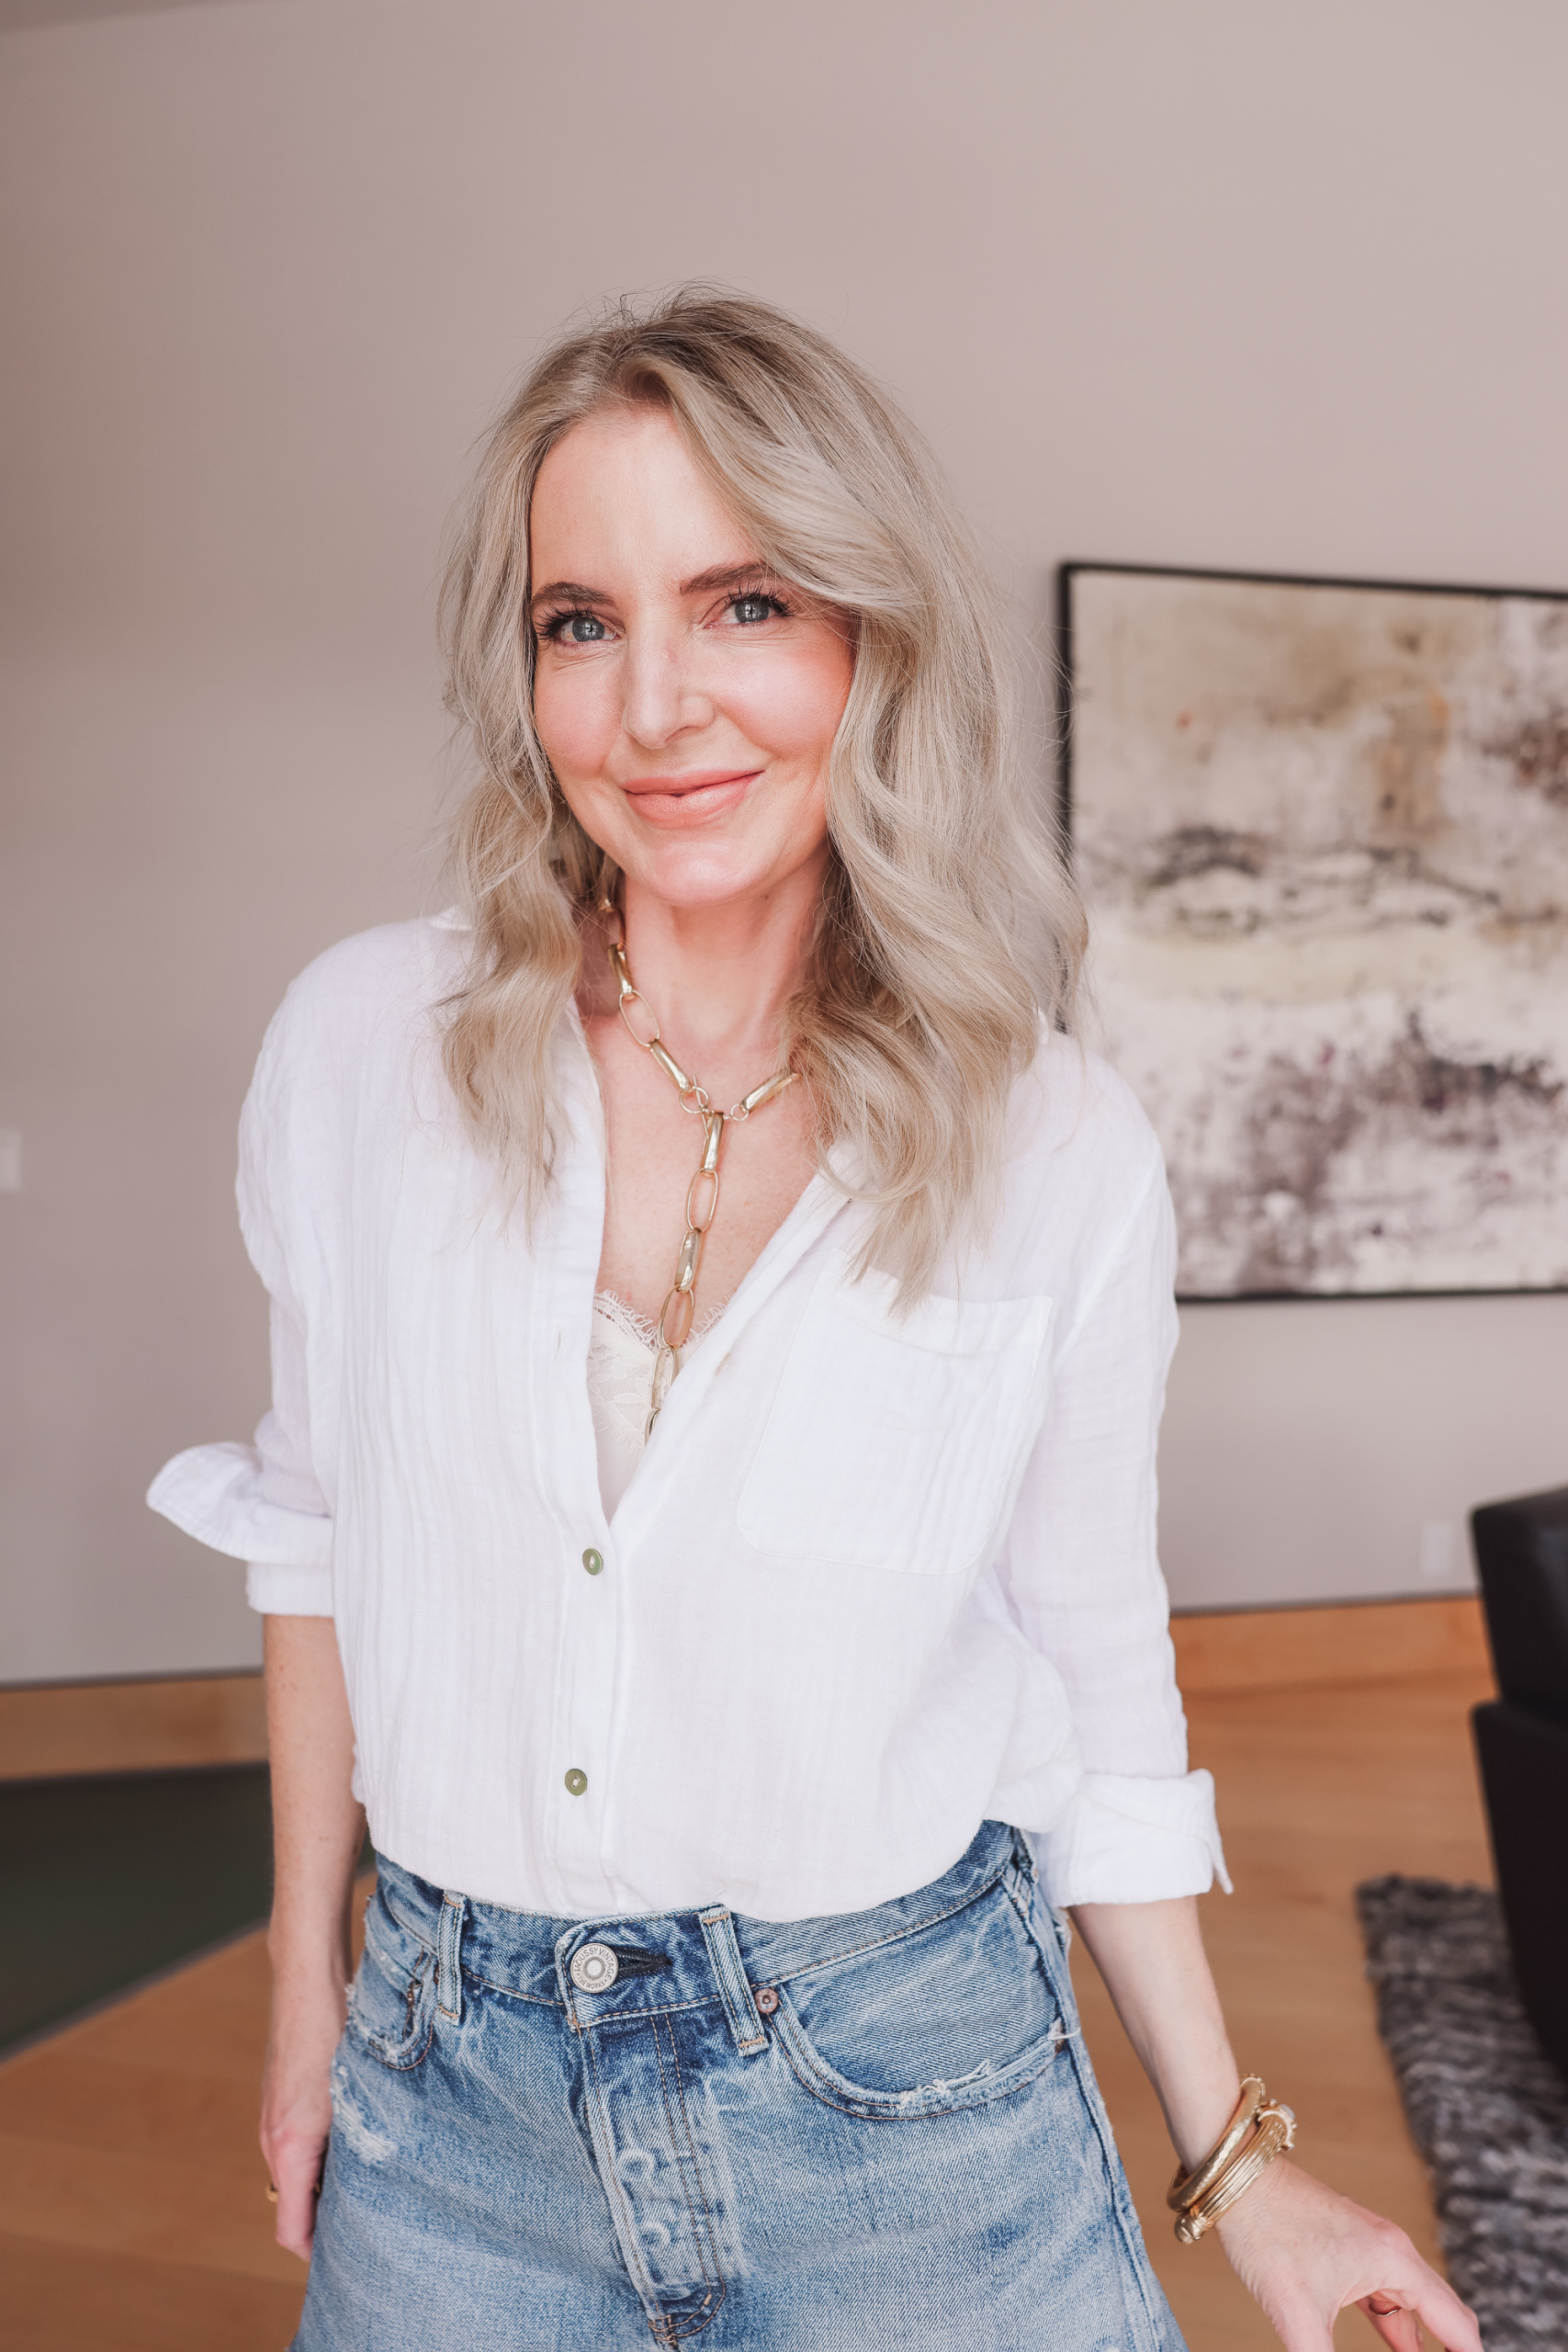 best white button down shirts, button down shorts over 40, how to find the perfect button dow shirt, white button down shirt, erin busbee, rails ellis cotton shirt, why own a white button down shirt, moussy vintage denim shorts